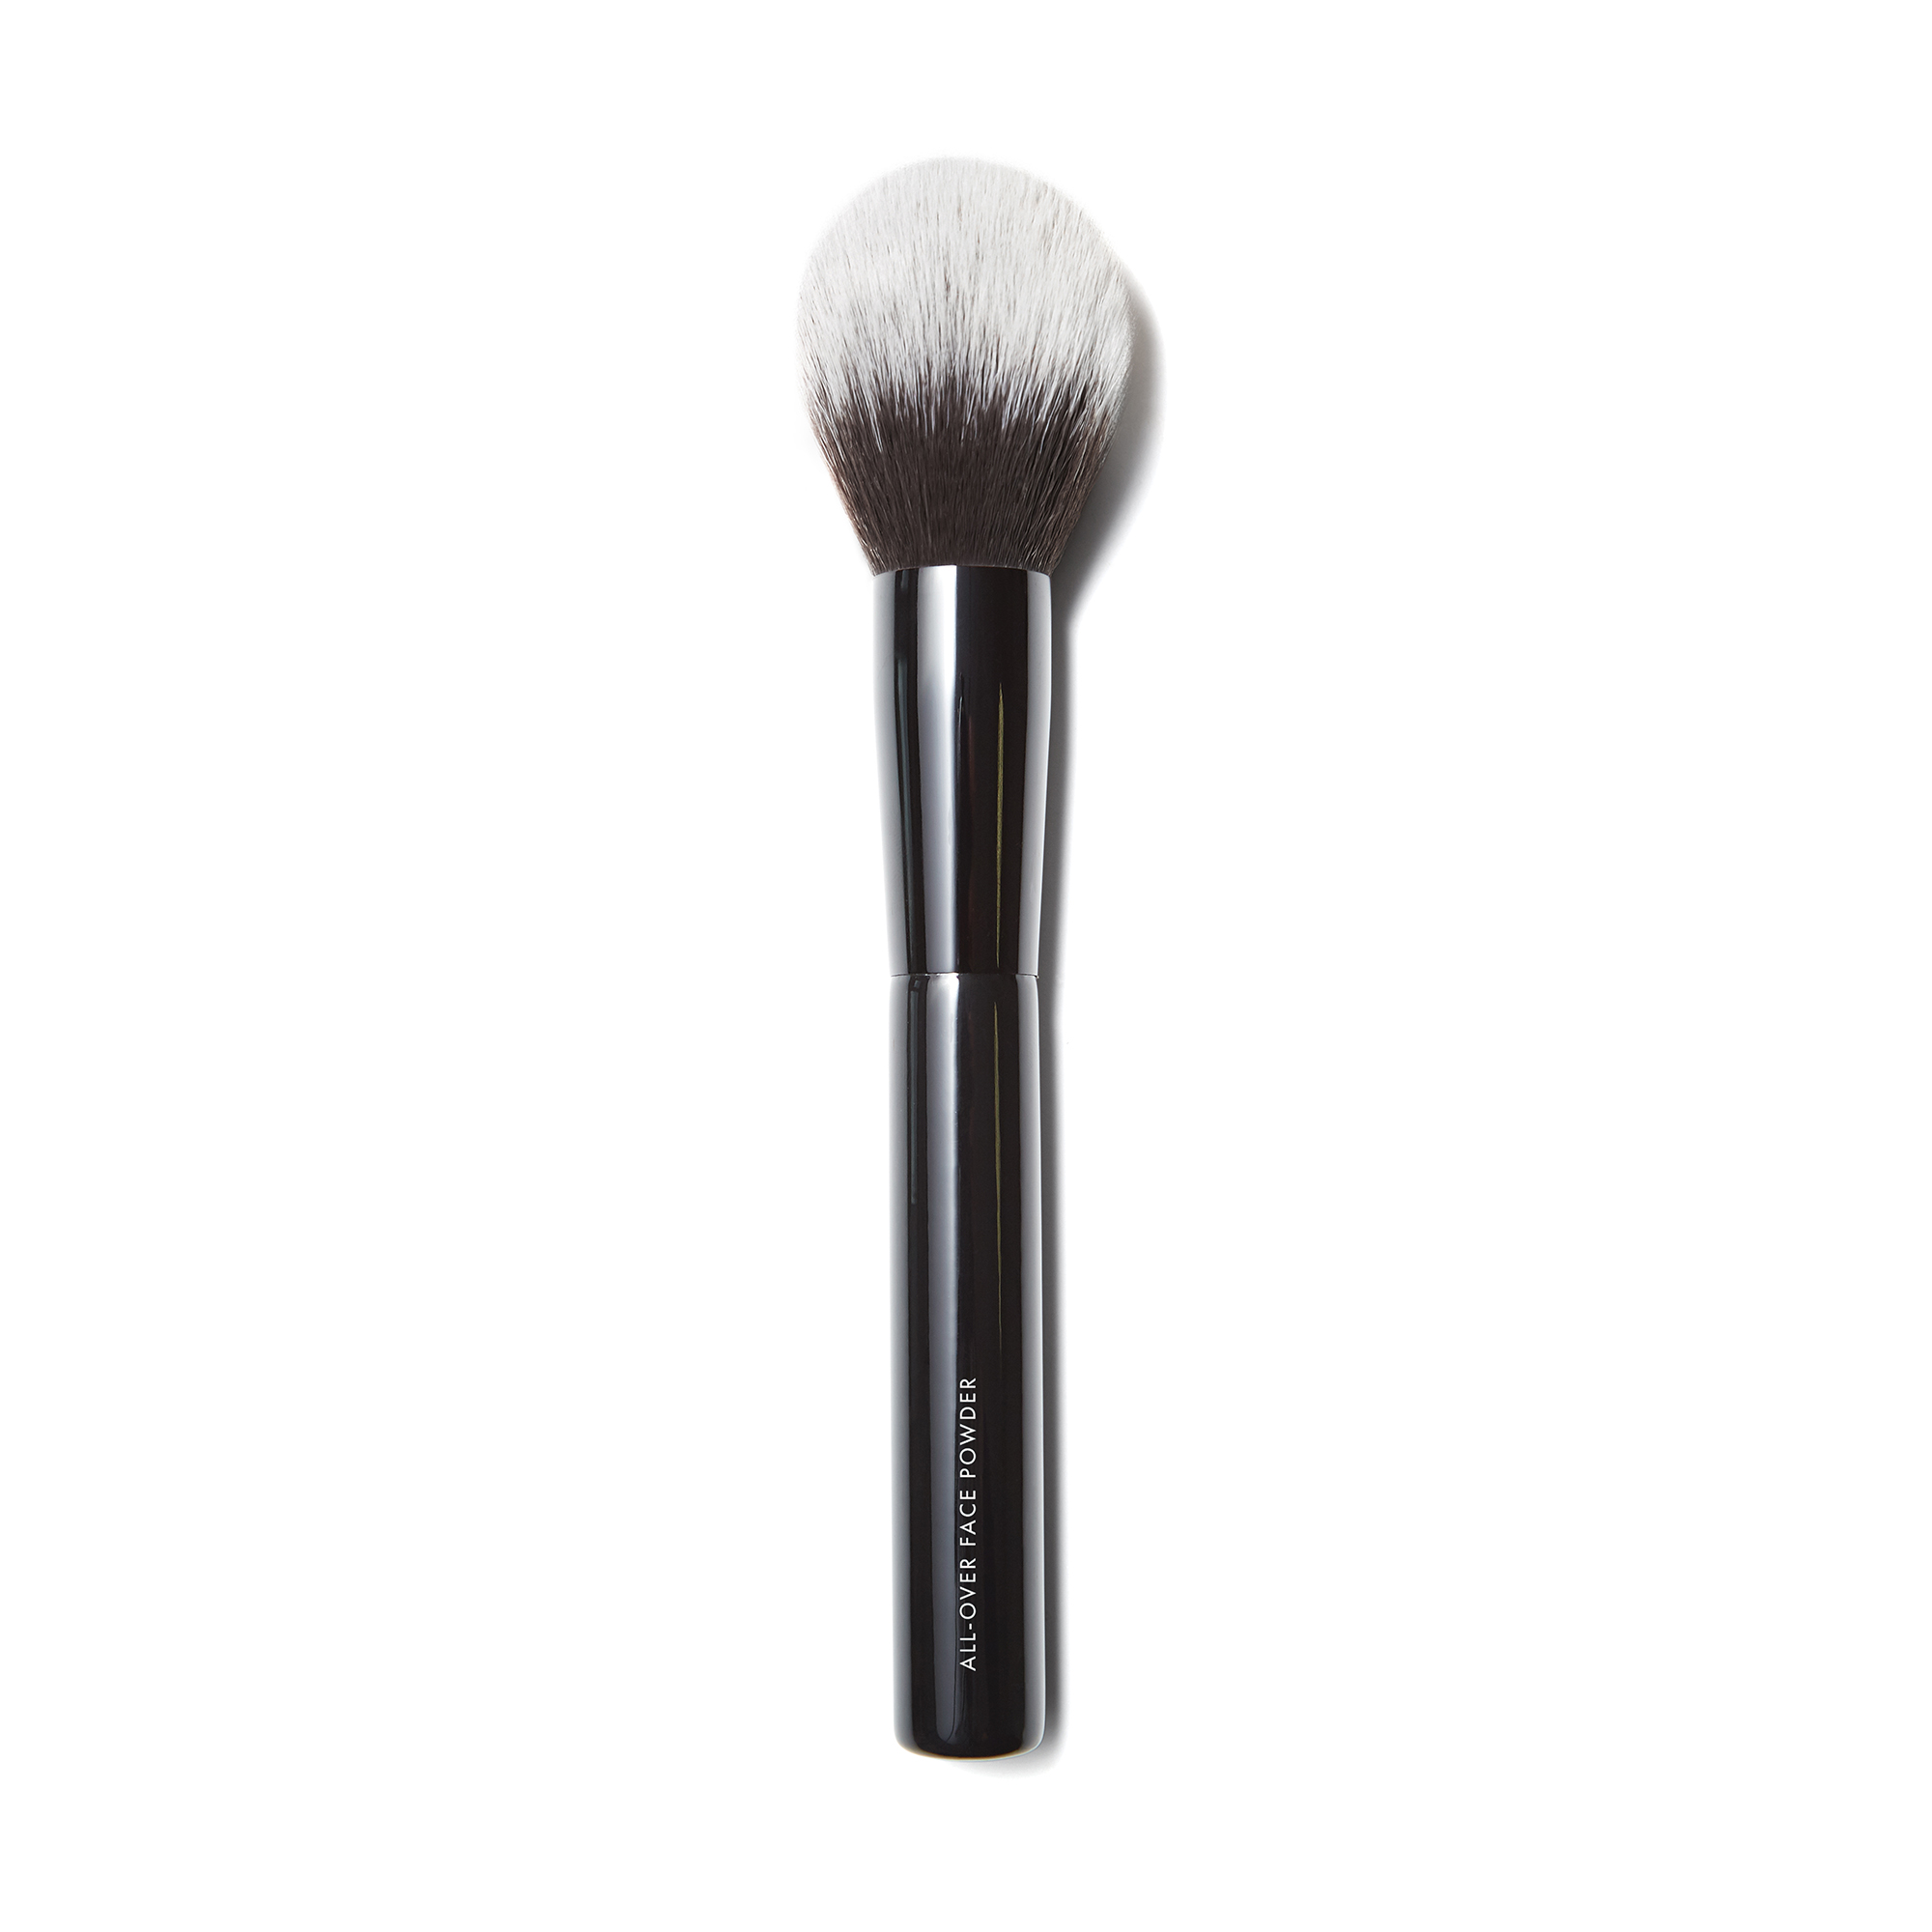 All-Over Face Powder Brush | Beauty Pie US